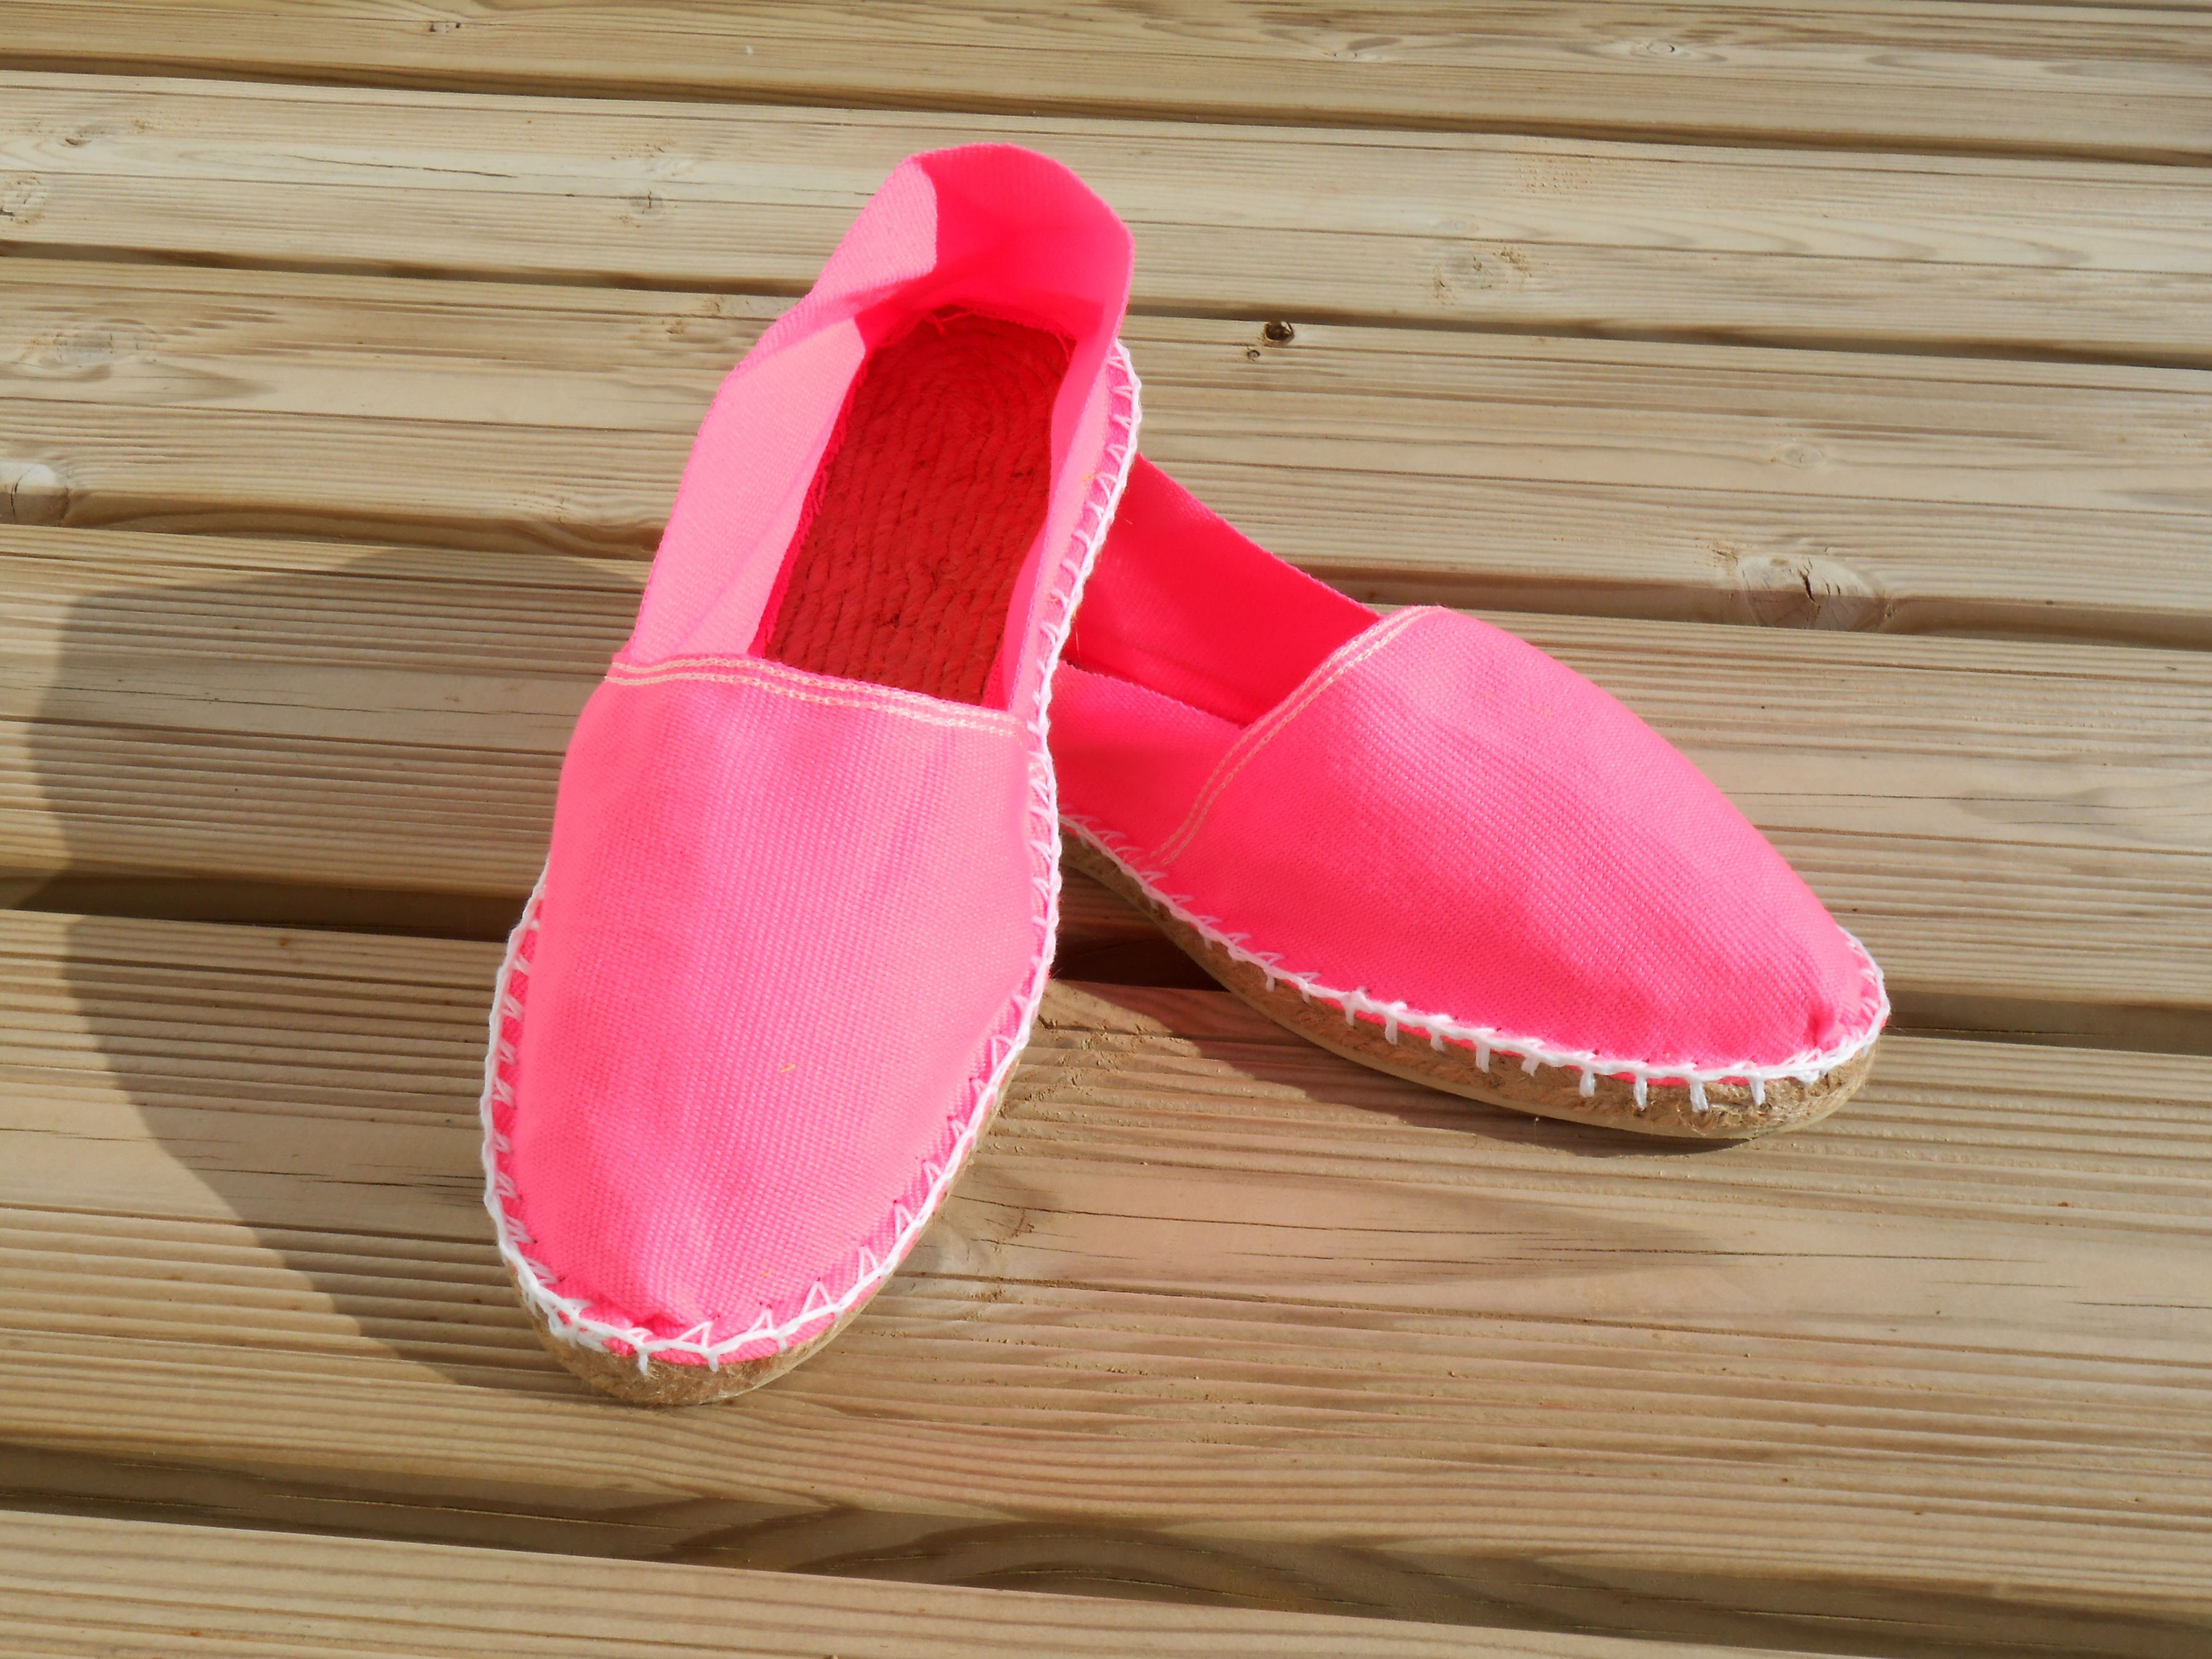 Espadrilles basques rose fluo taille 43